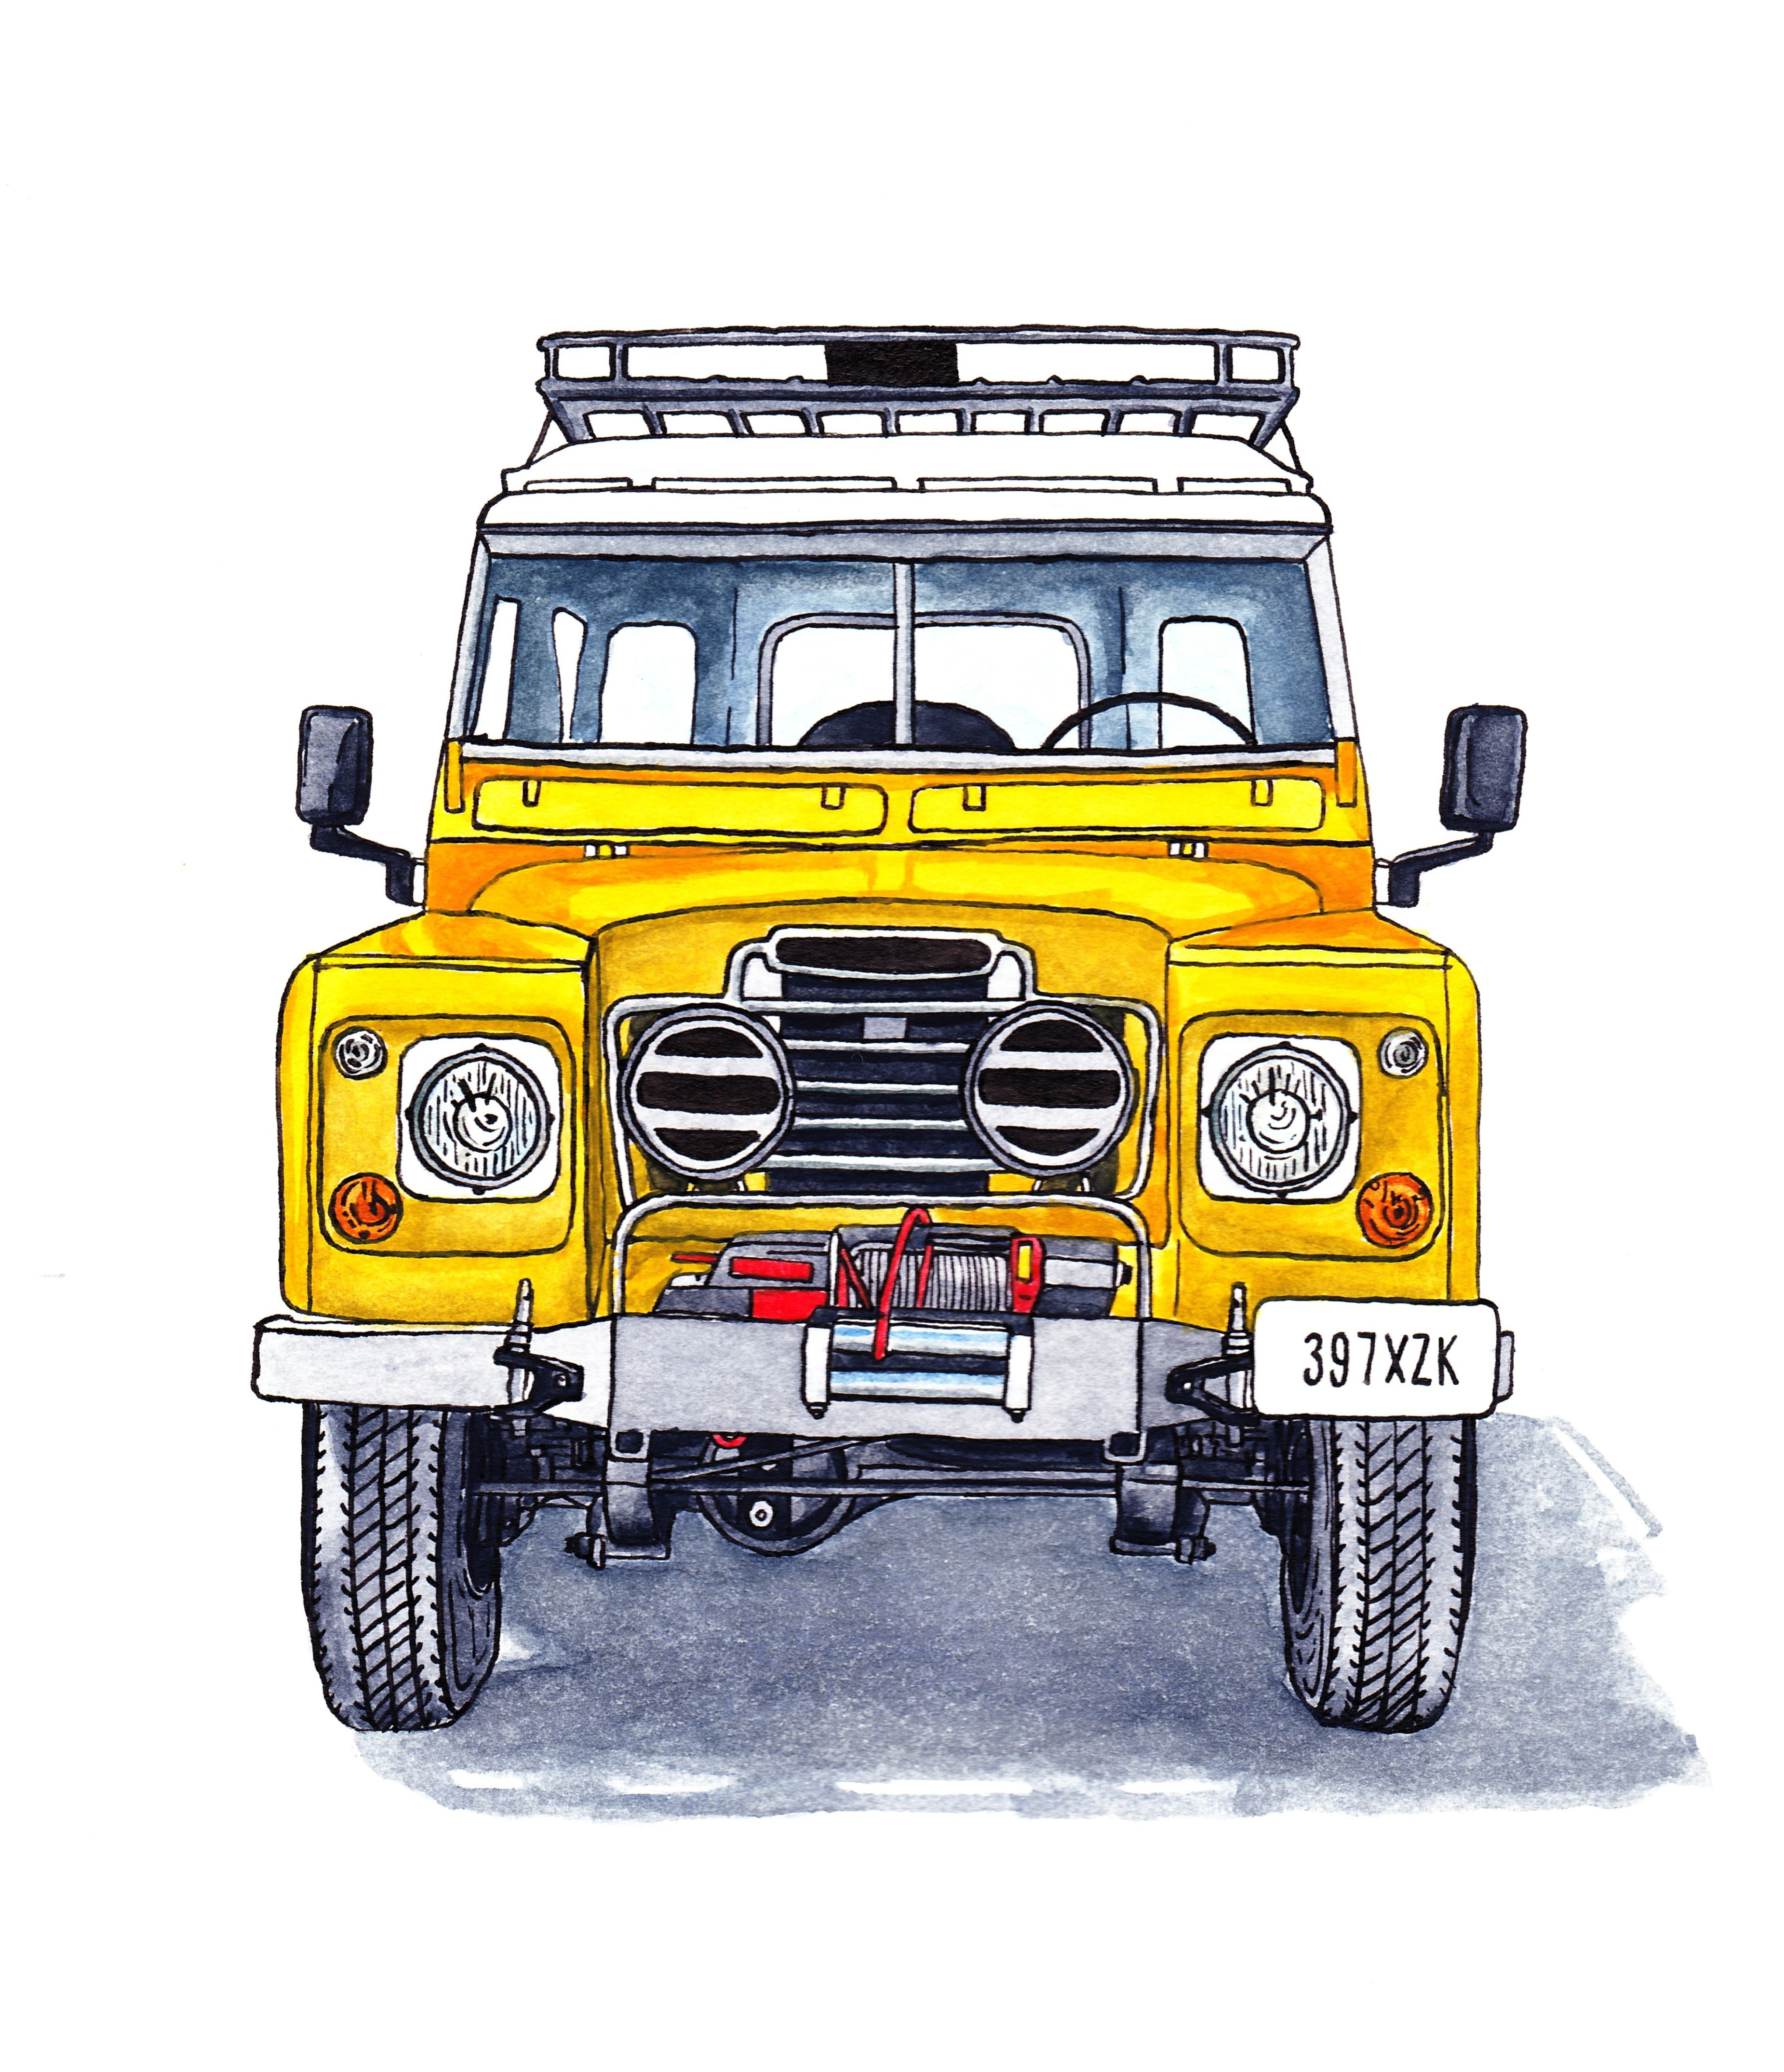 Landrover Defender Land Rover Series 109: Land Rover Series III Ink And Watercolour Illustration